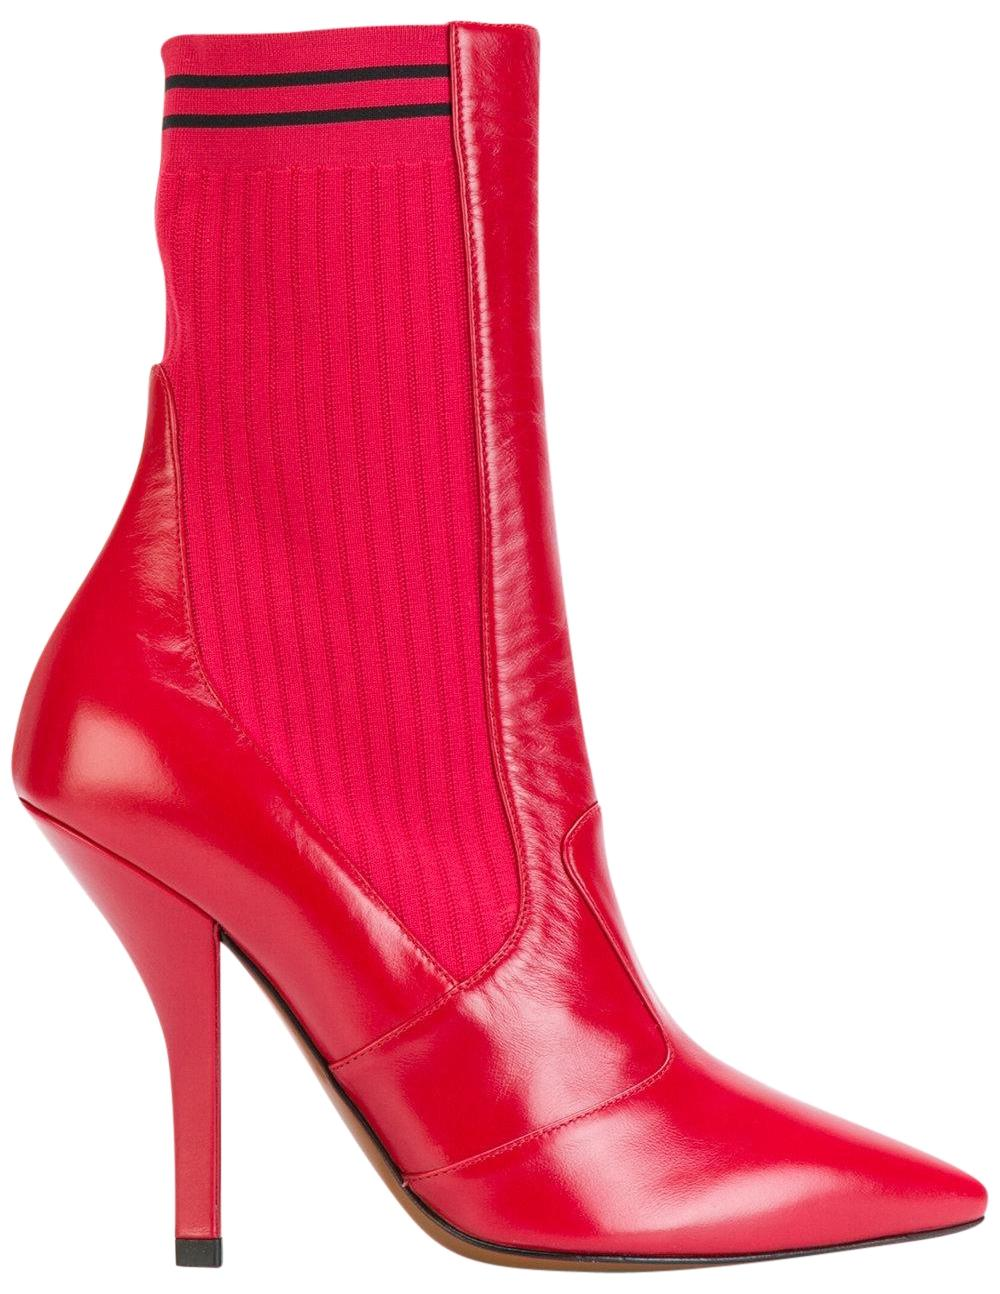 Fendi Pointed-Toe Leather Booties buy cheap browse 2014 unisex for sale pG3U0Wm